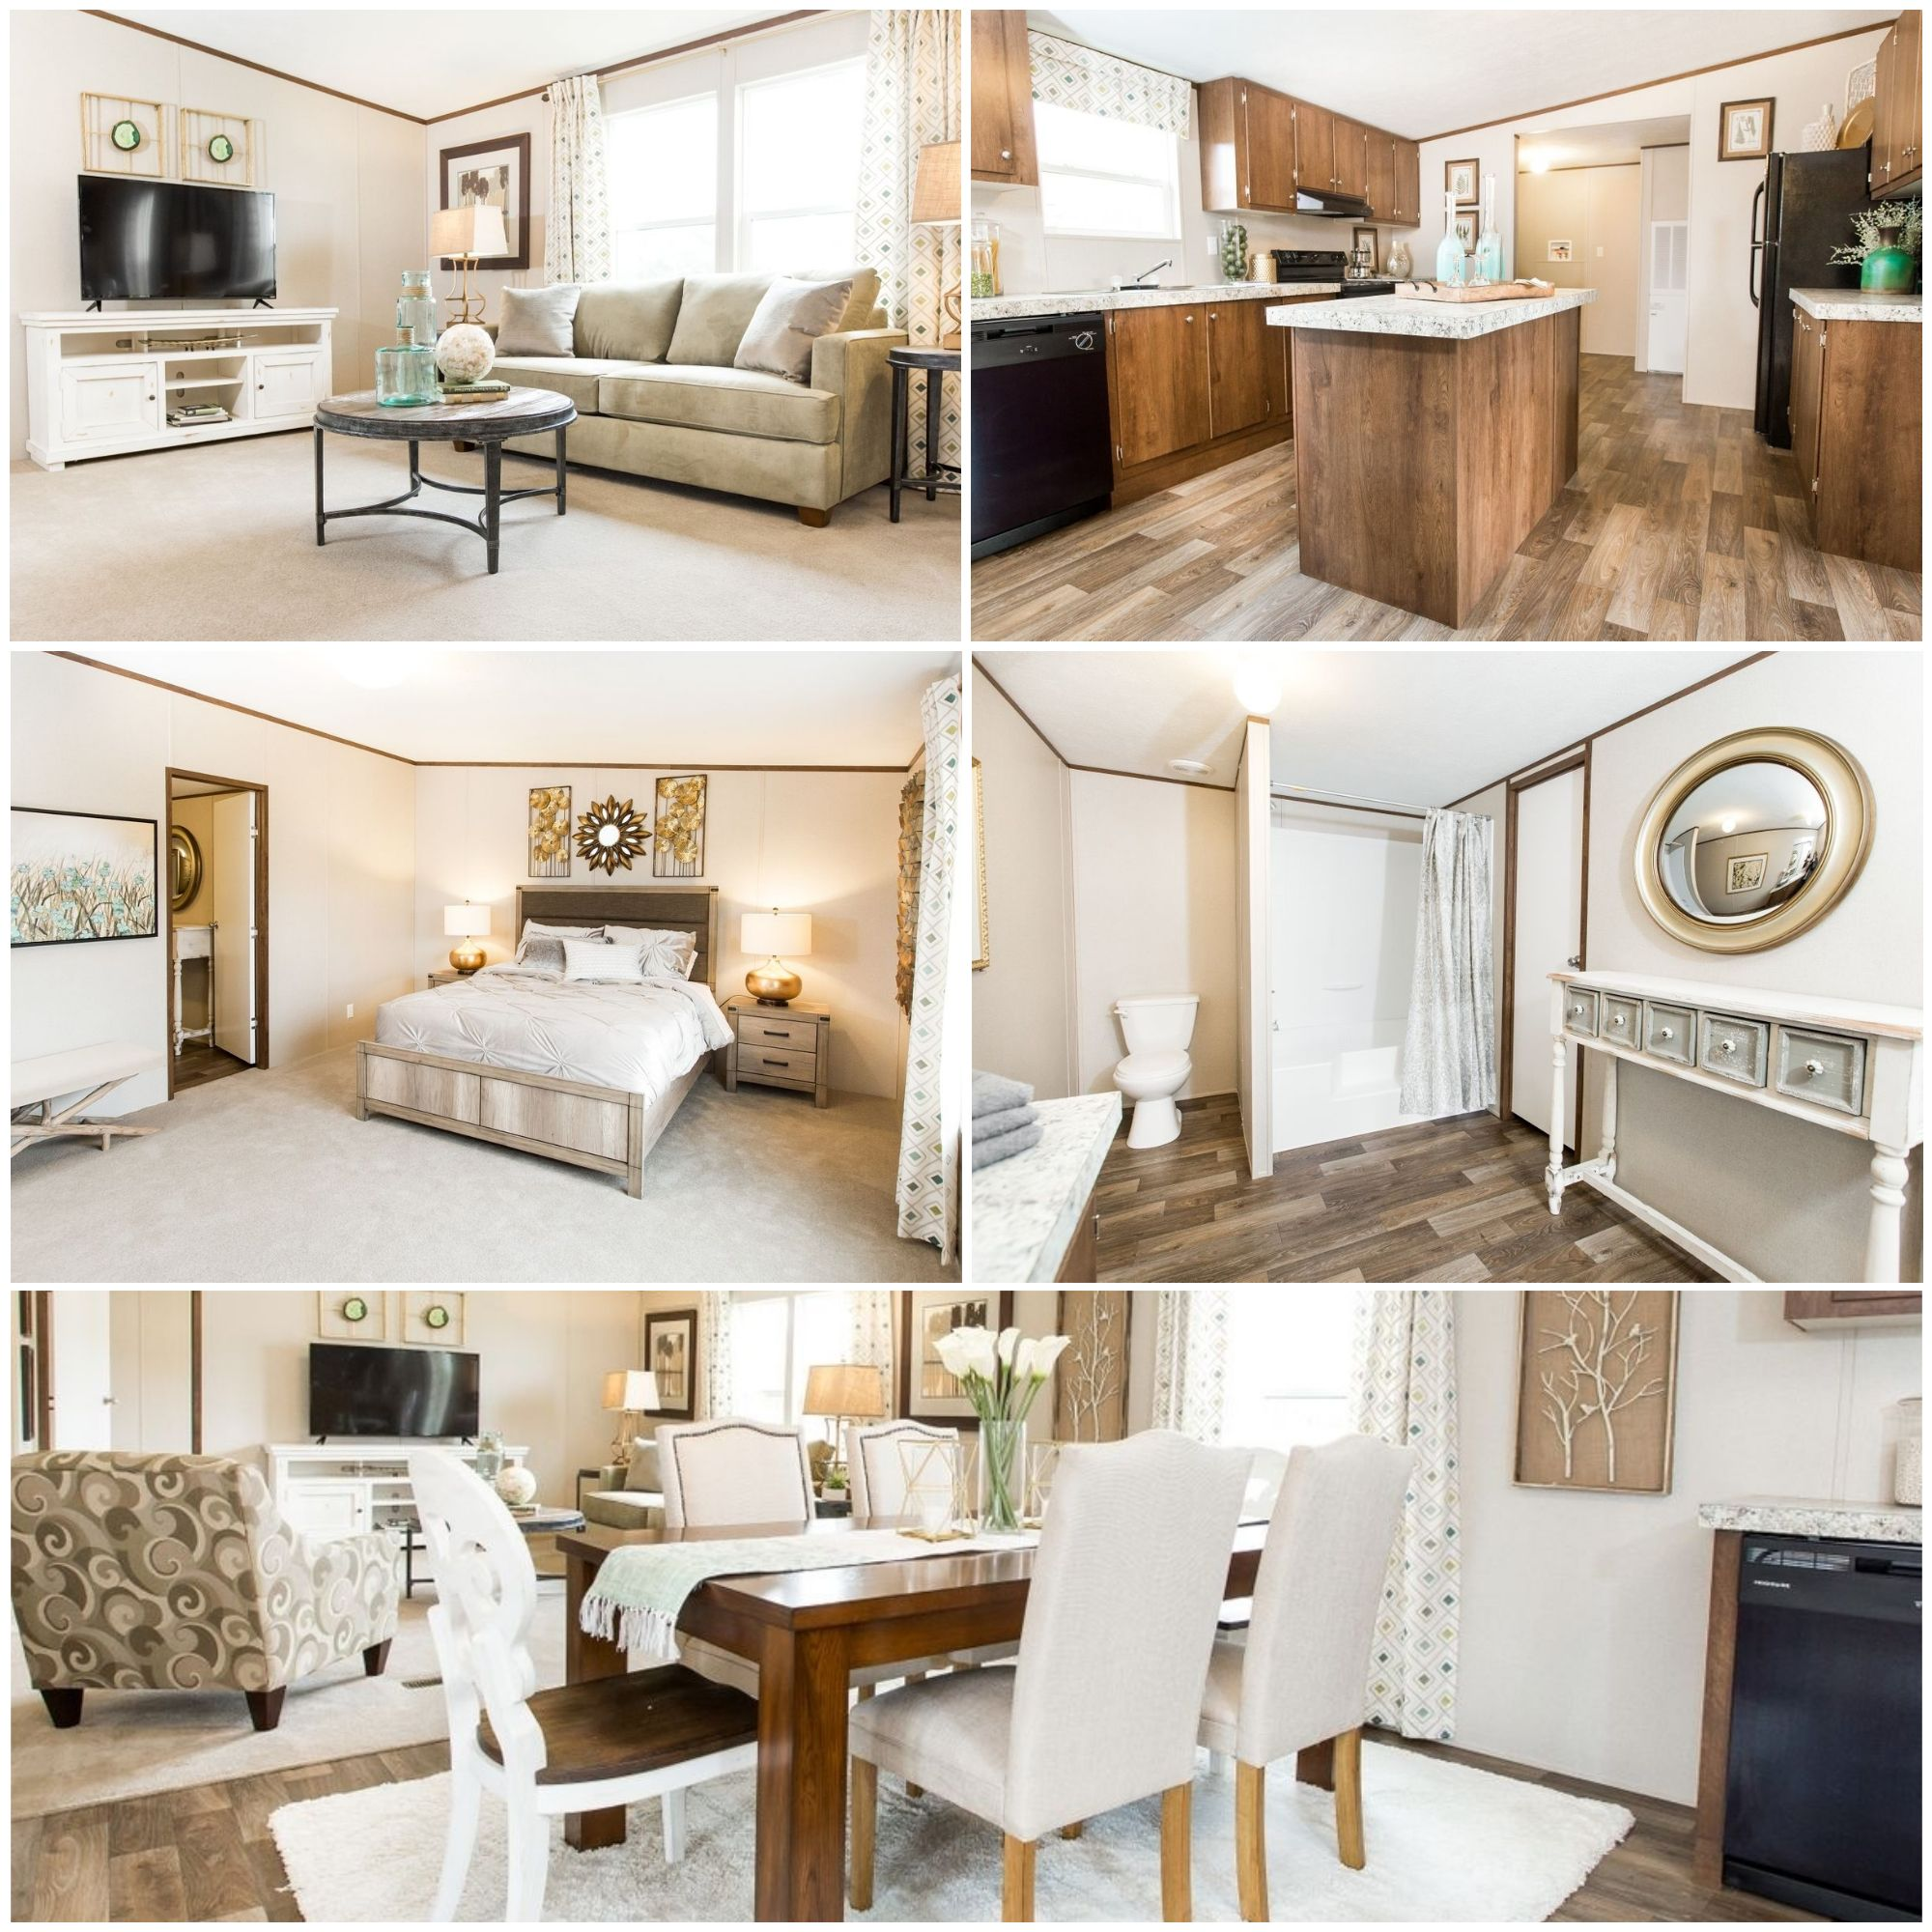 4 Bedroom Mobile Home Starting At Just $52,499